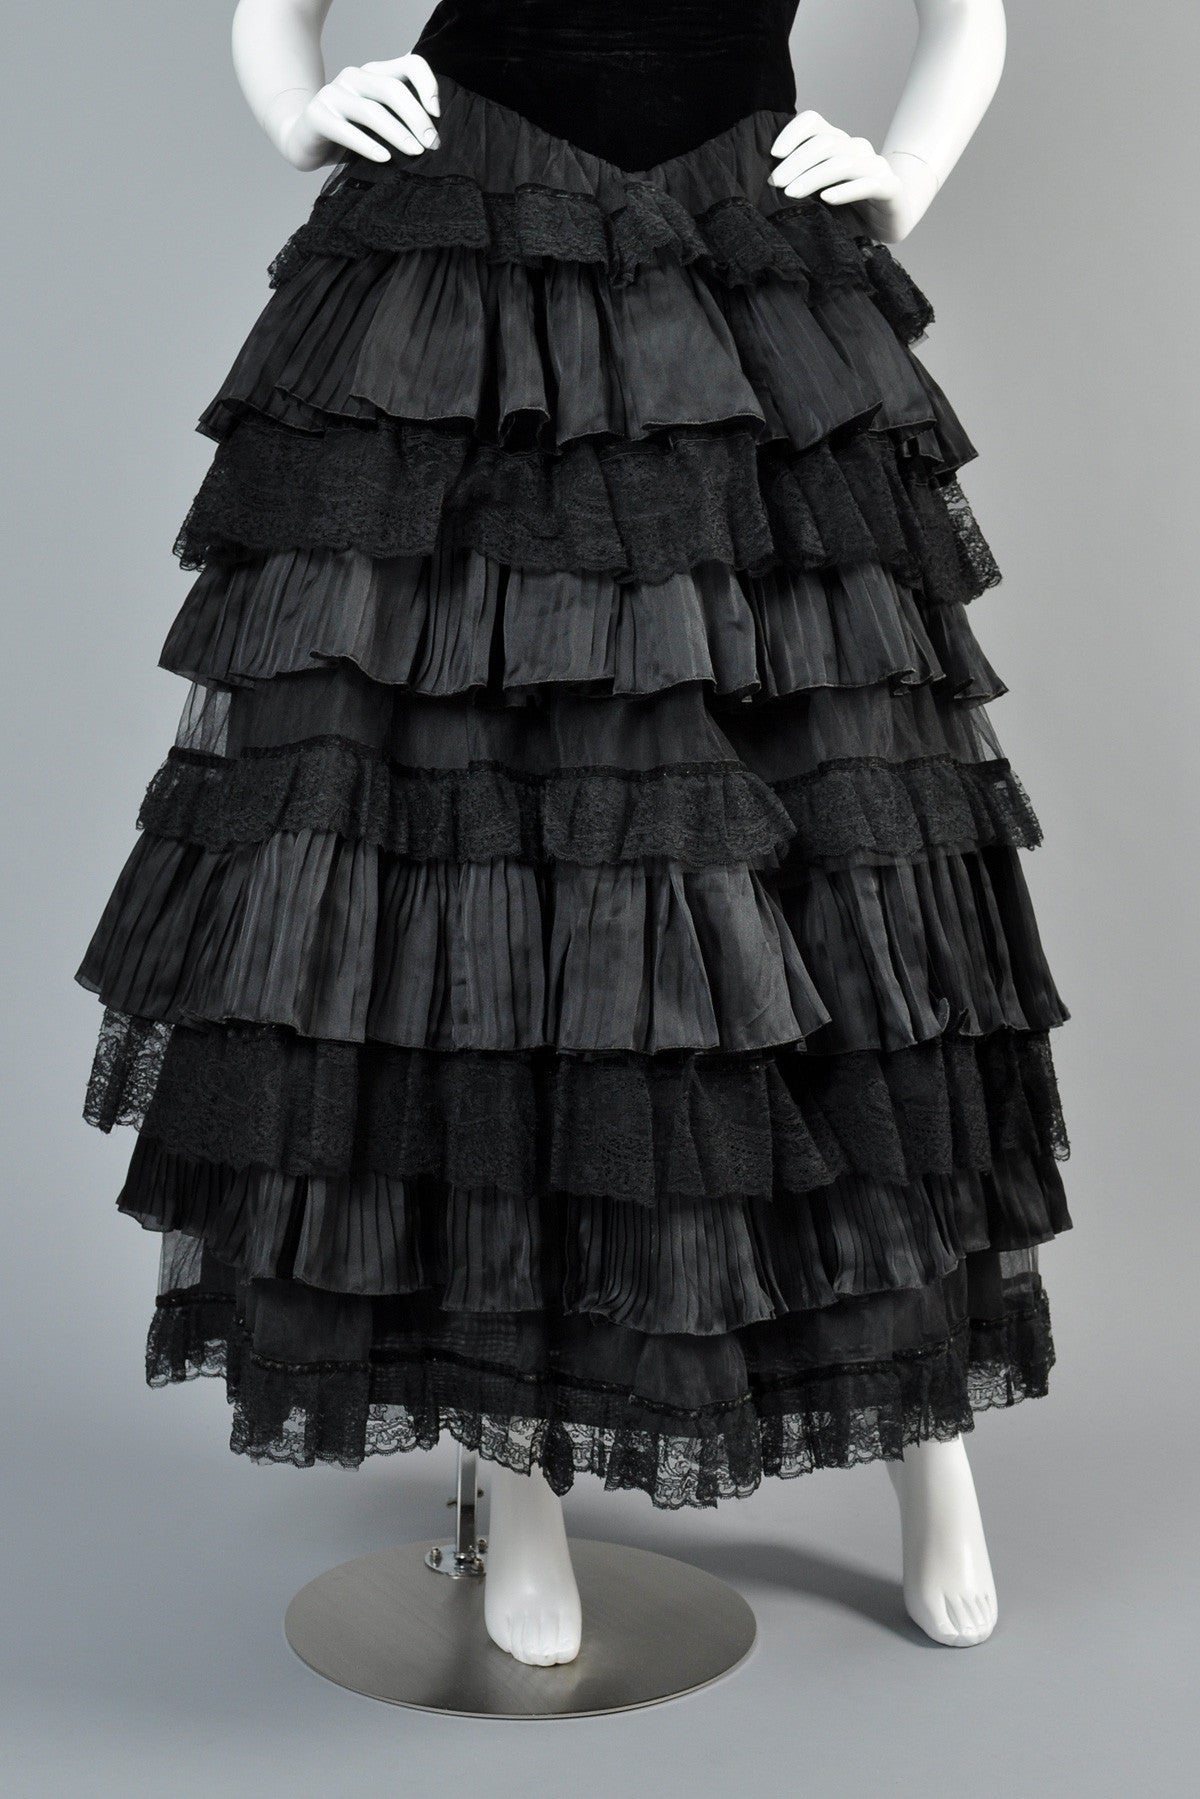 Valentino Ruffled Velvet + Lace Evening Gown   BUSTOWN MODERN